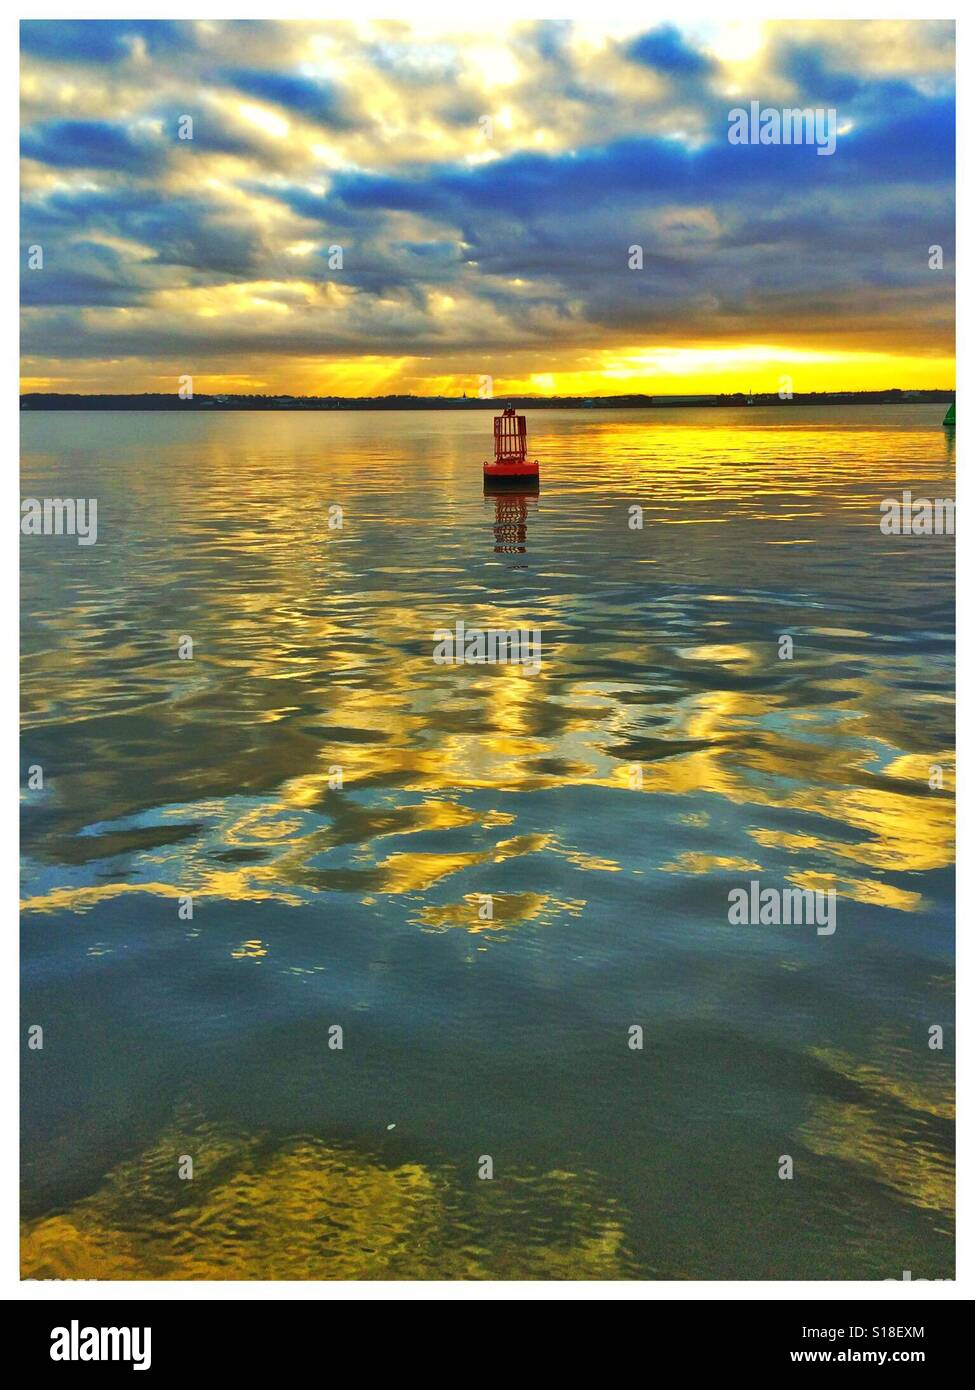 Red buoy on a river, sky & clouds reflected on the water at sunset Stock Photo